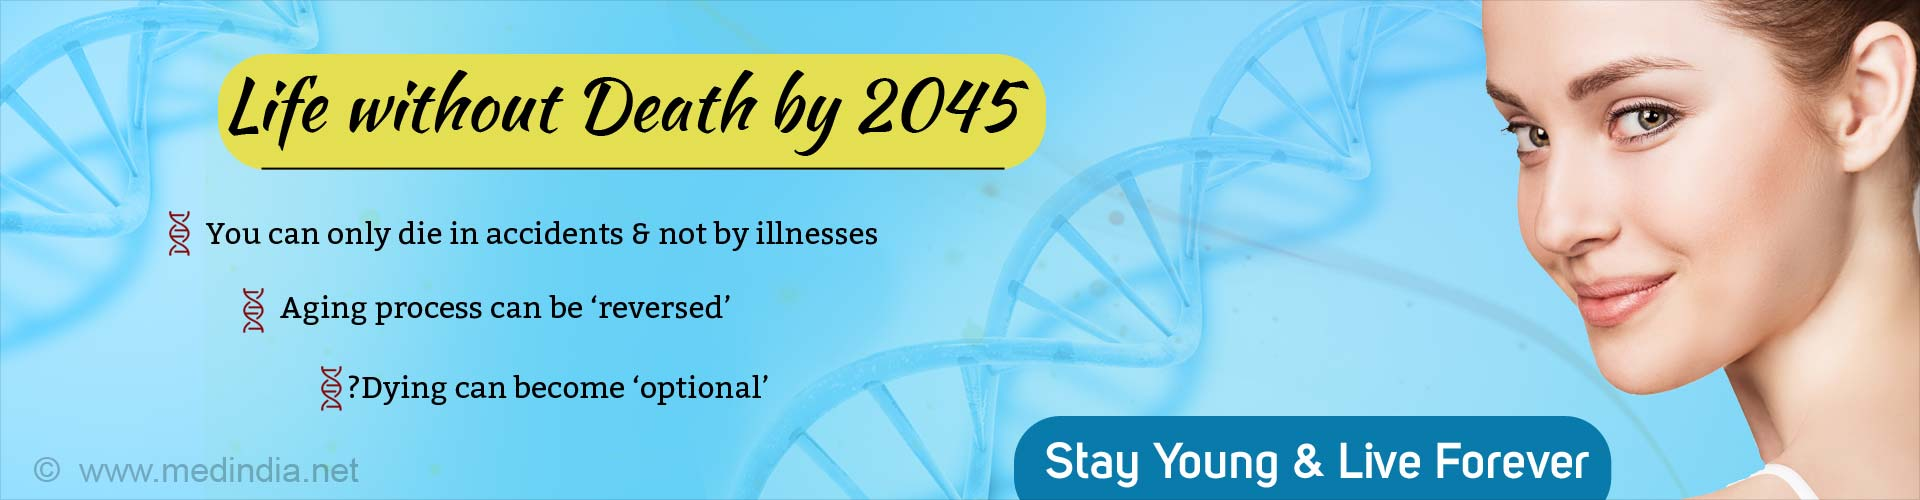 Life Without Death and Aging by 2045